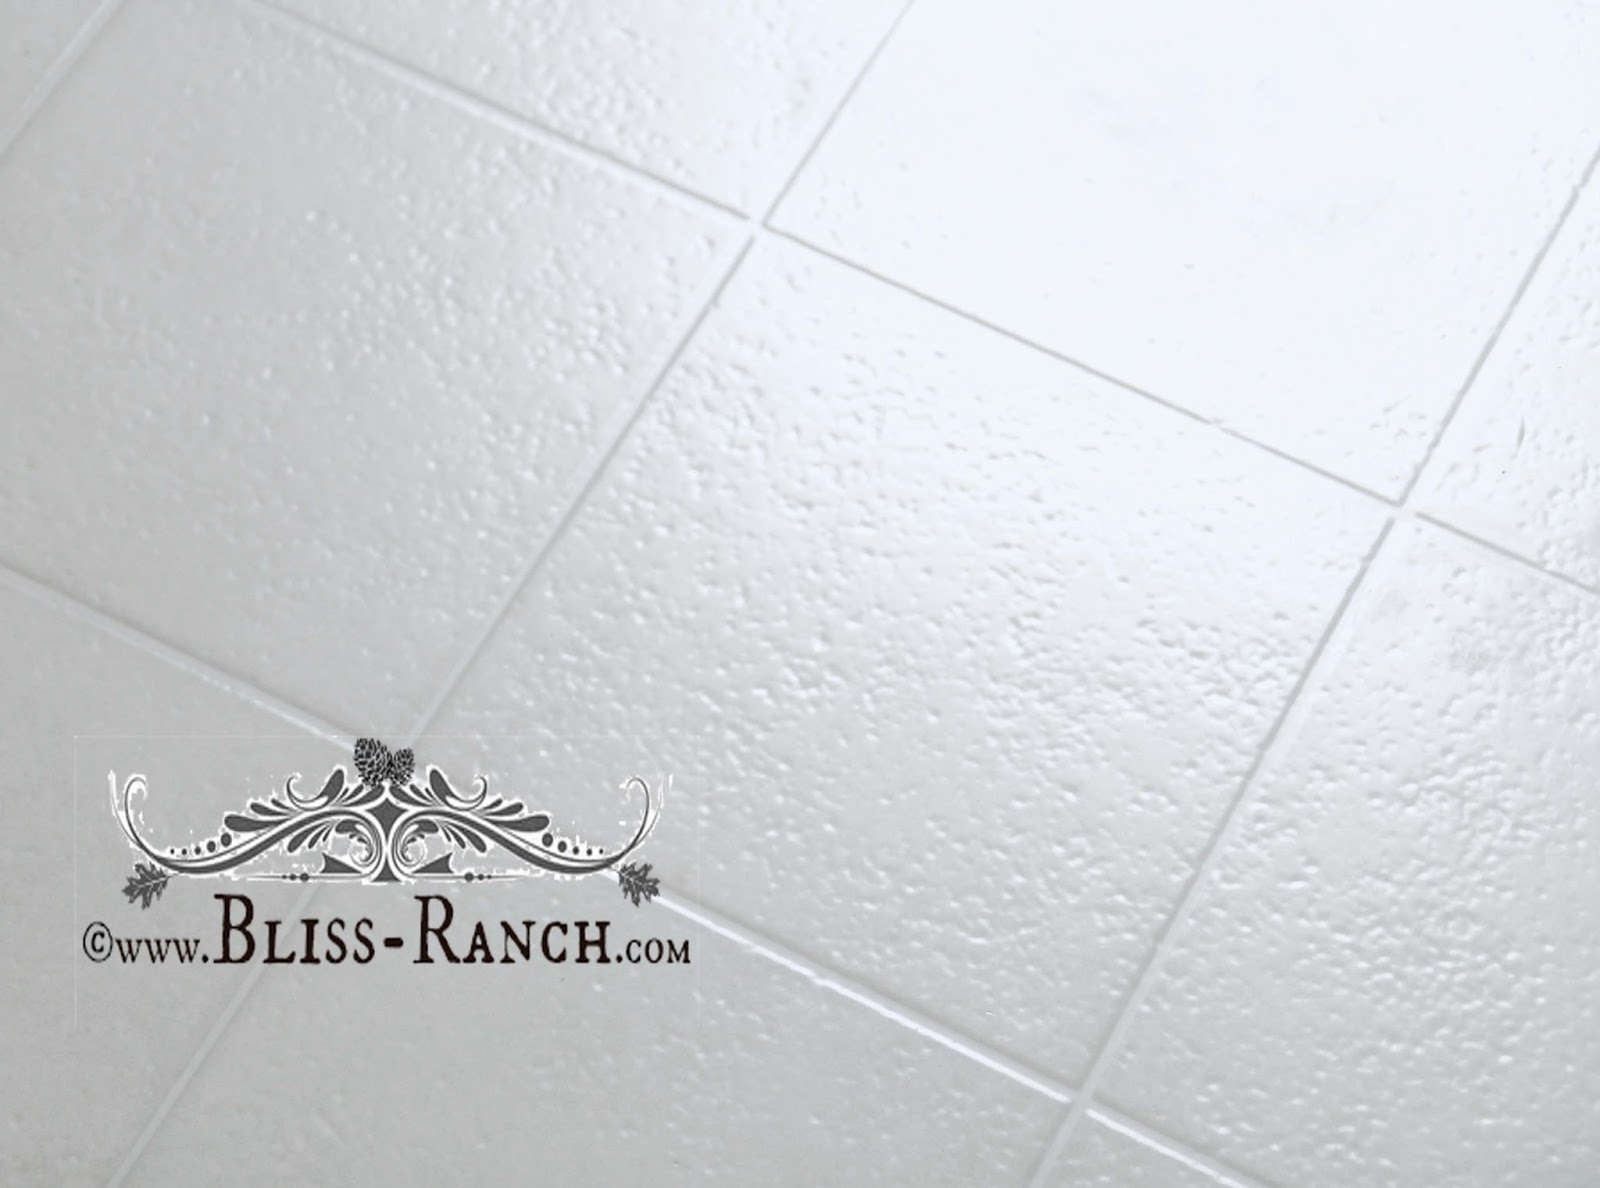 Bliss Ranch: The Family Votes on Laundry Room Flooring